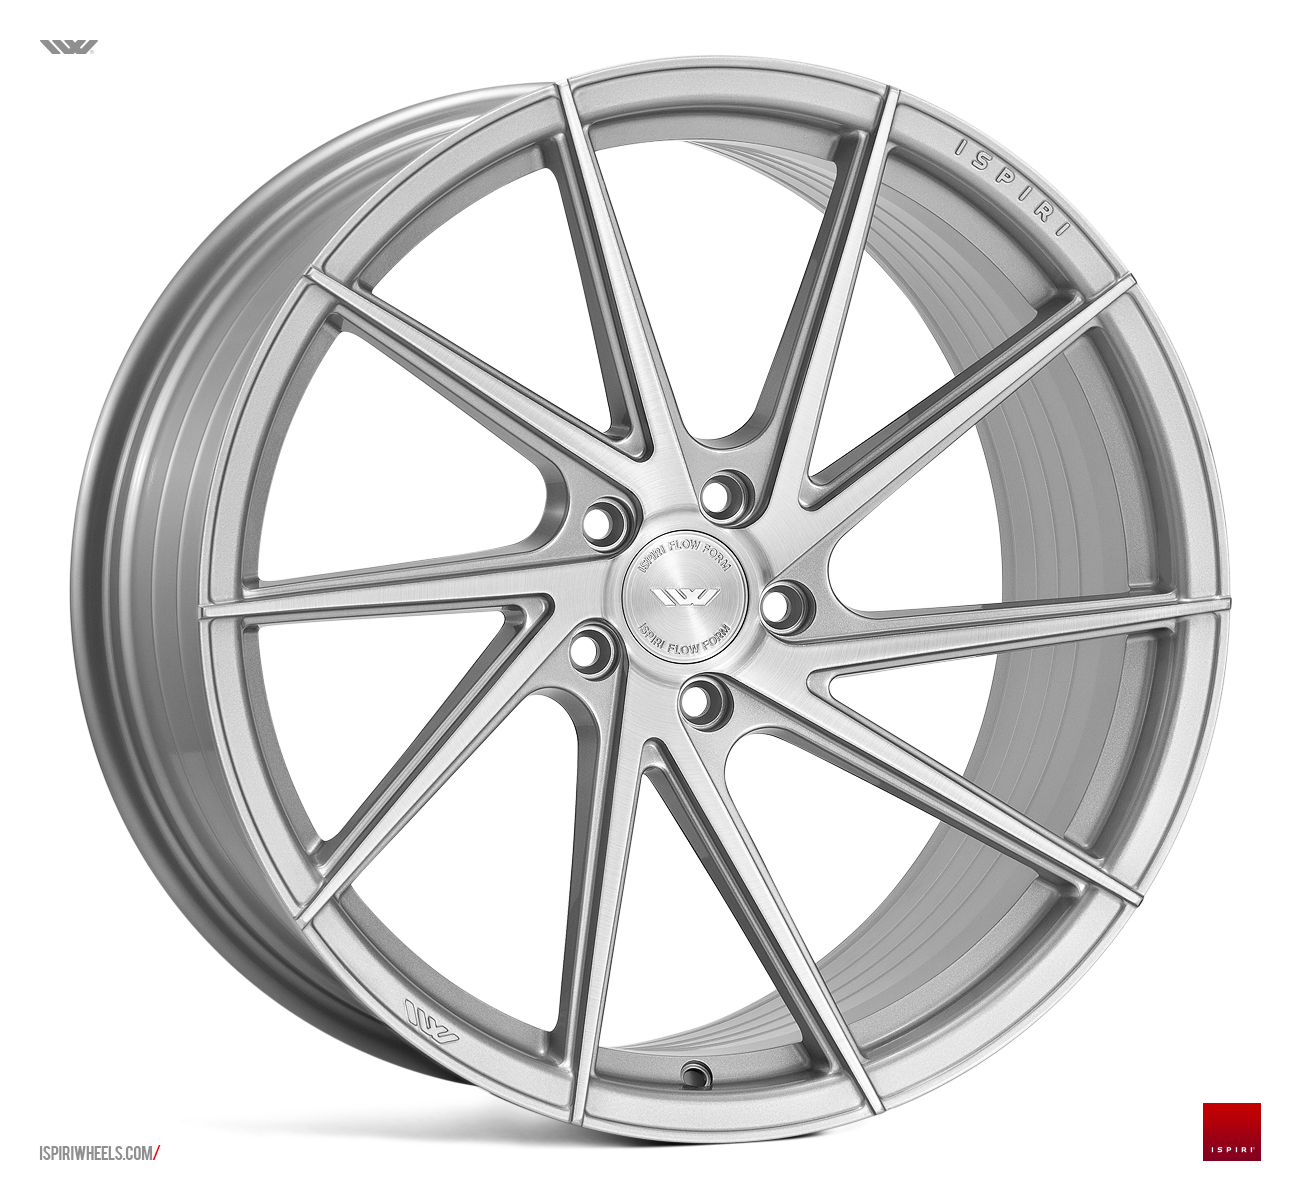 "NEW 20"" ISPIRI FFR1D MULTI-SPOKE DIRECTIONAL ALLOY WHEELS IN SILVER WITH BRUSHED POLISH FACE, DEEPER CONCAVE 10.5"" REARS 5x120"